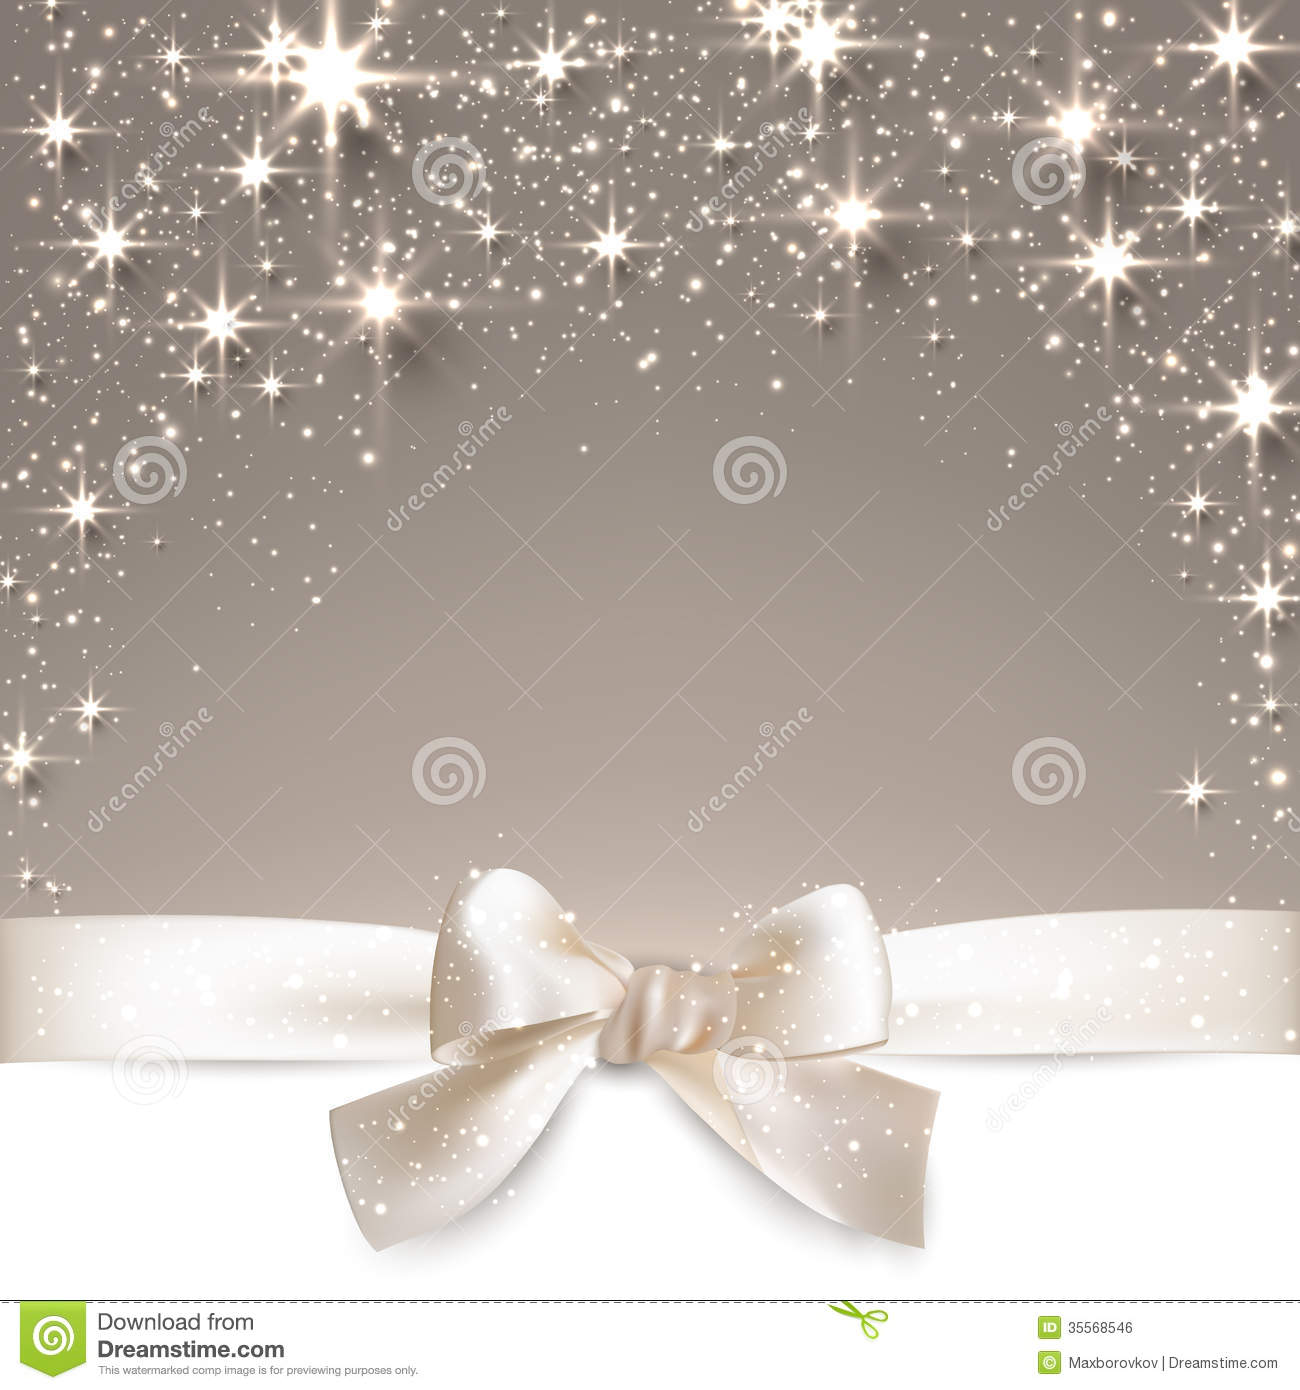 3d Snow Falling Wallpaper Christmas Beige Starry Background Royalty Free Stock